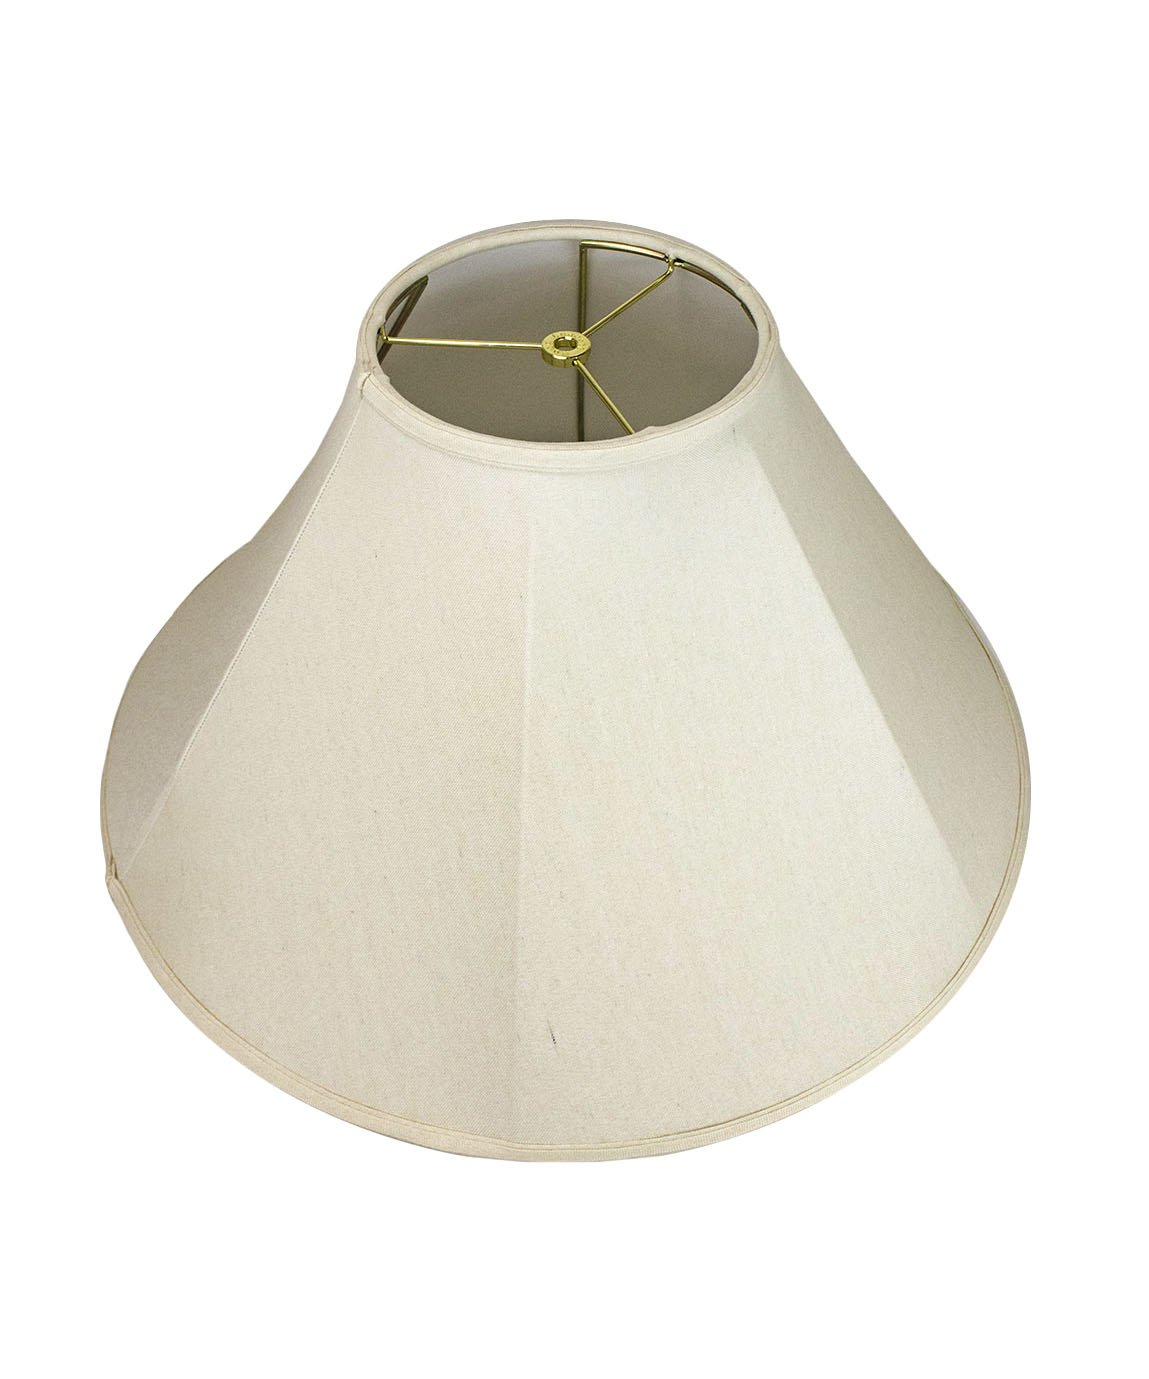 8x22x14 Coolie Lamp Shade Premium Light Oatmeal Linen with Brass Spider fitter by Home Concept - Perfect for table and floor lamps - Large, Off-white